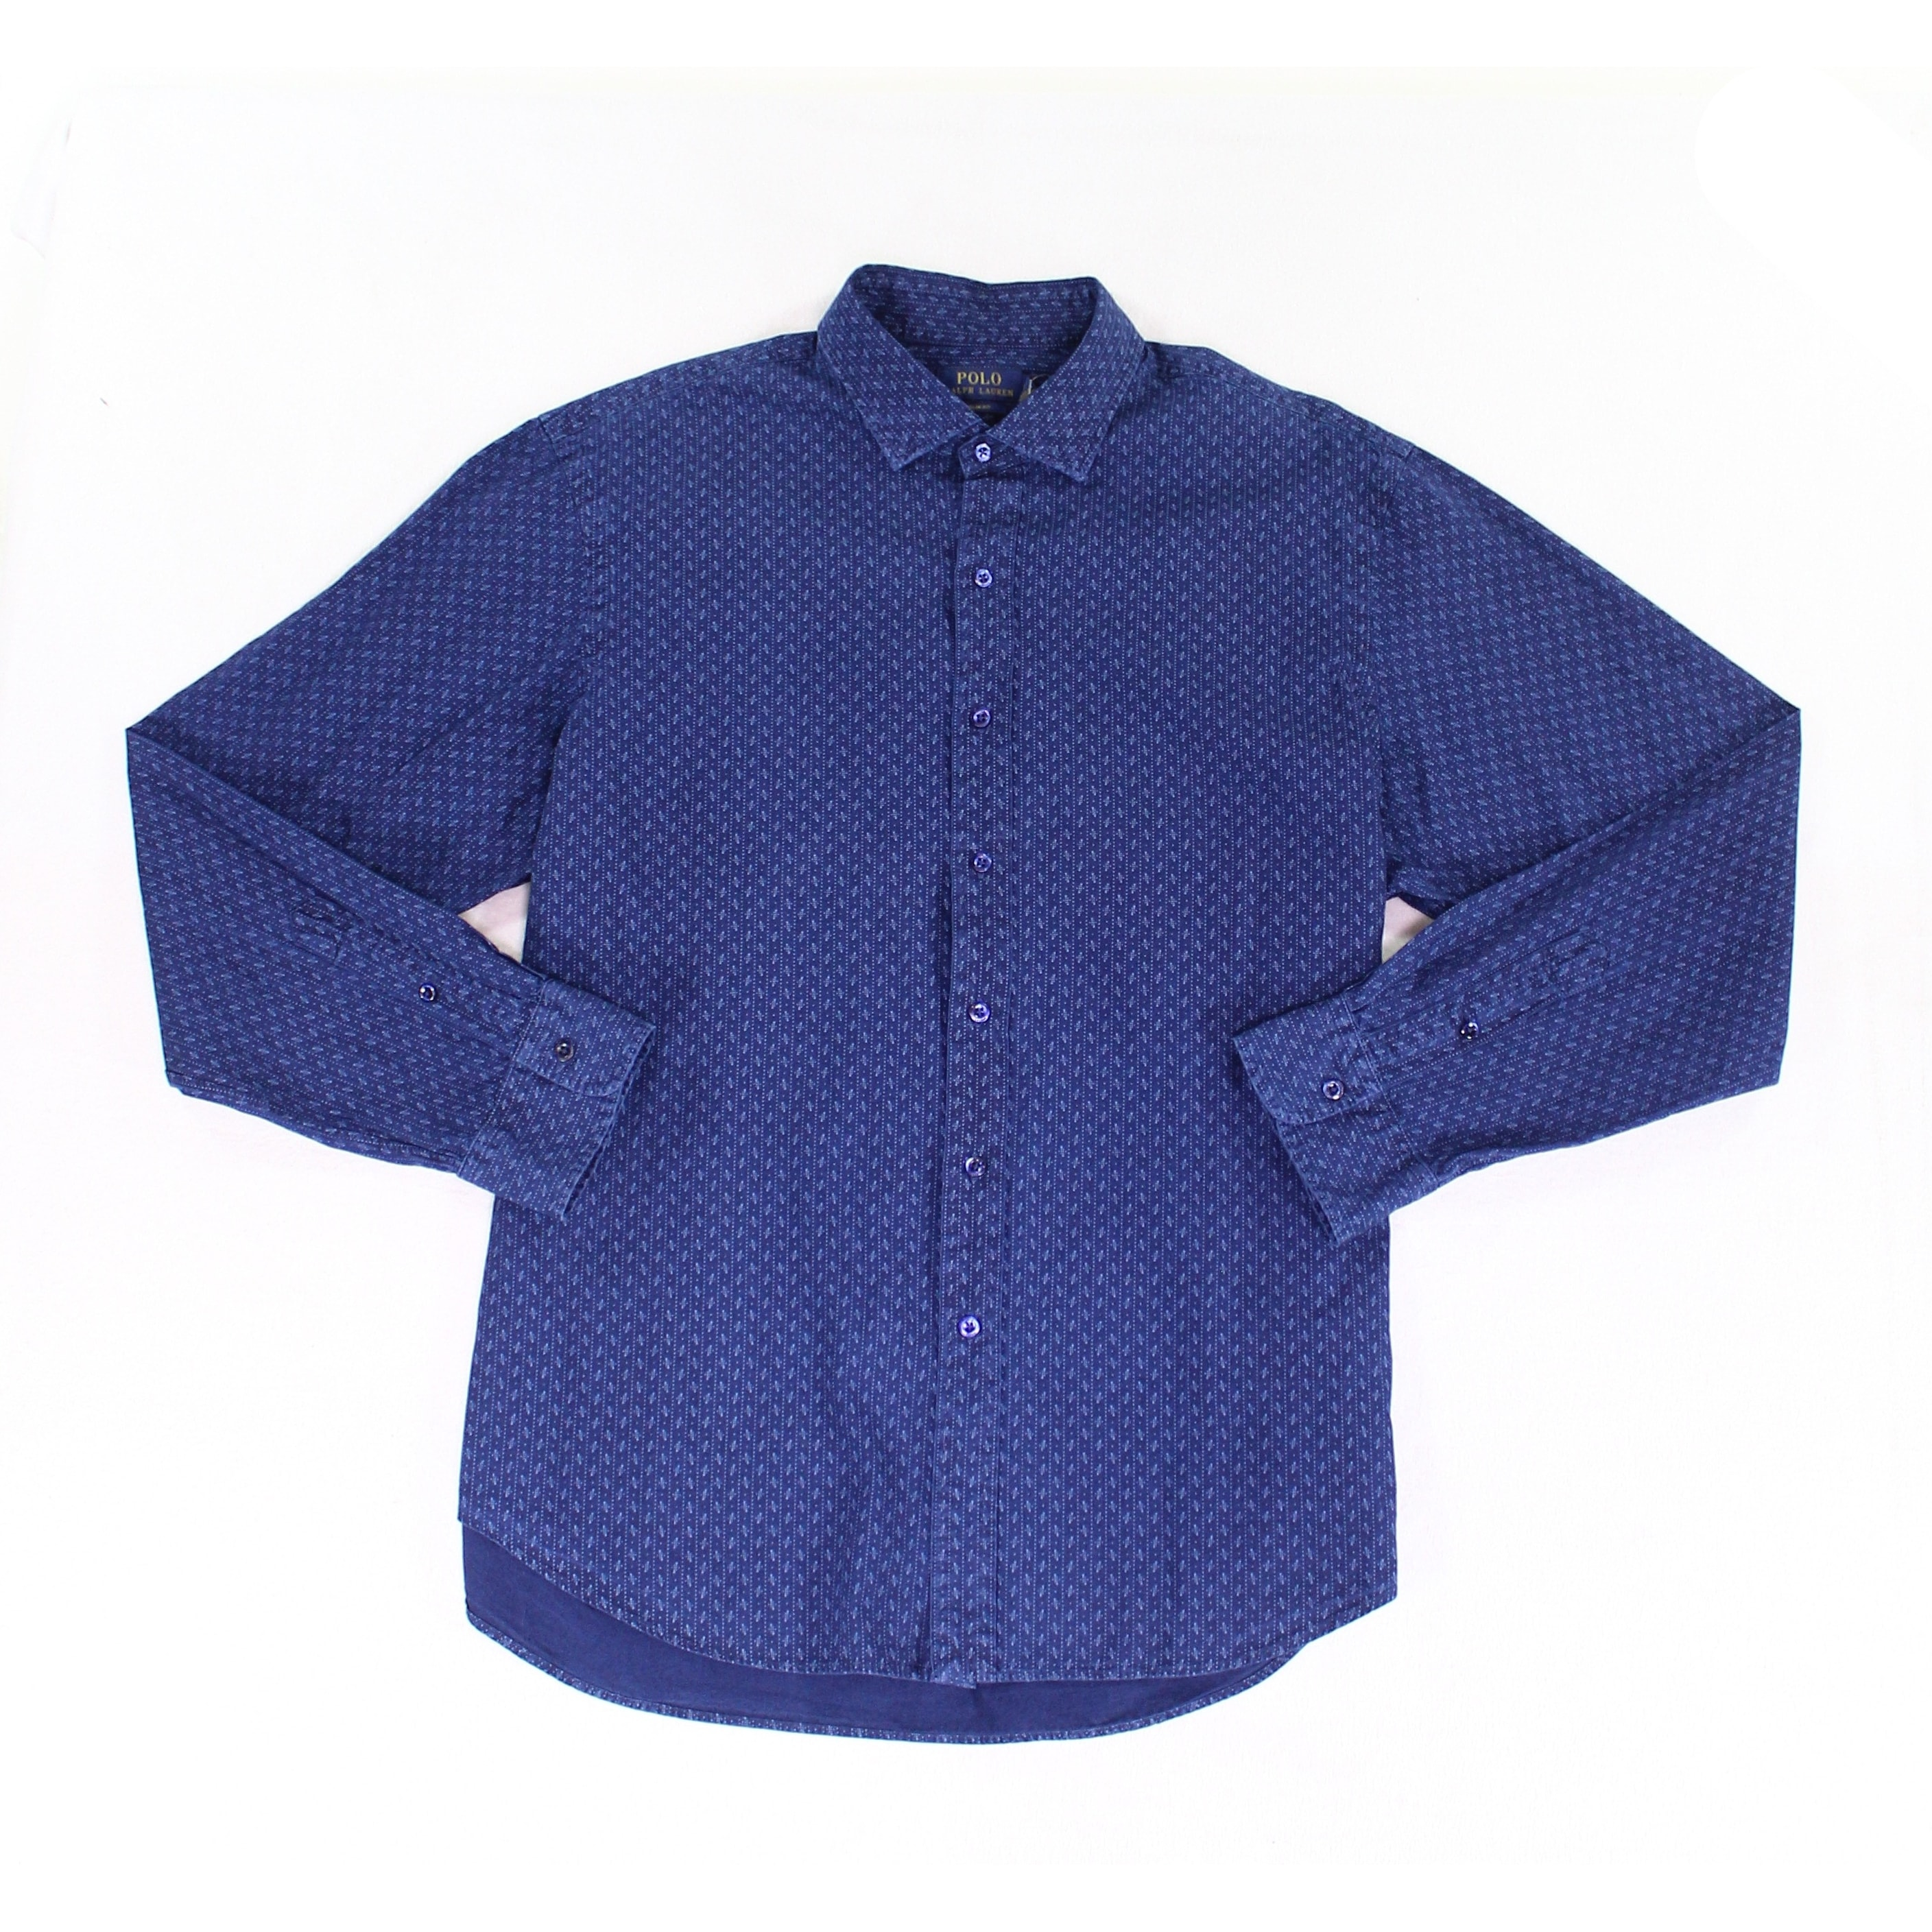 dacd51fa Polo Ralph Lauren Shirts | Find Great Men's Clothing Deals Shopping at  Overstock